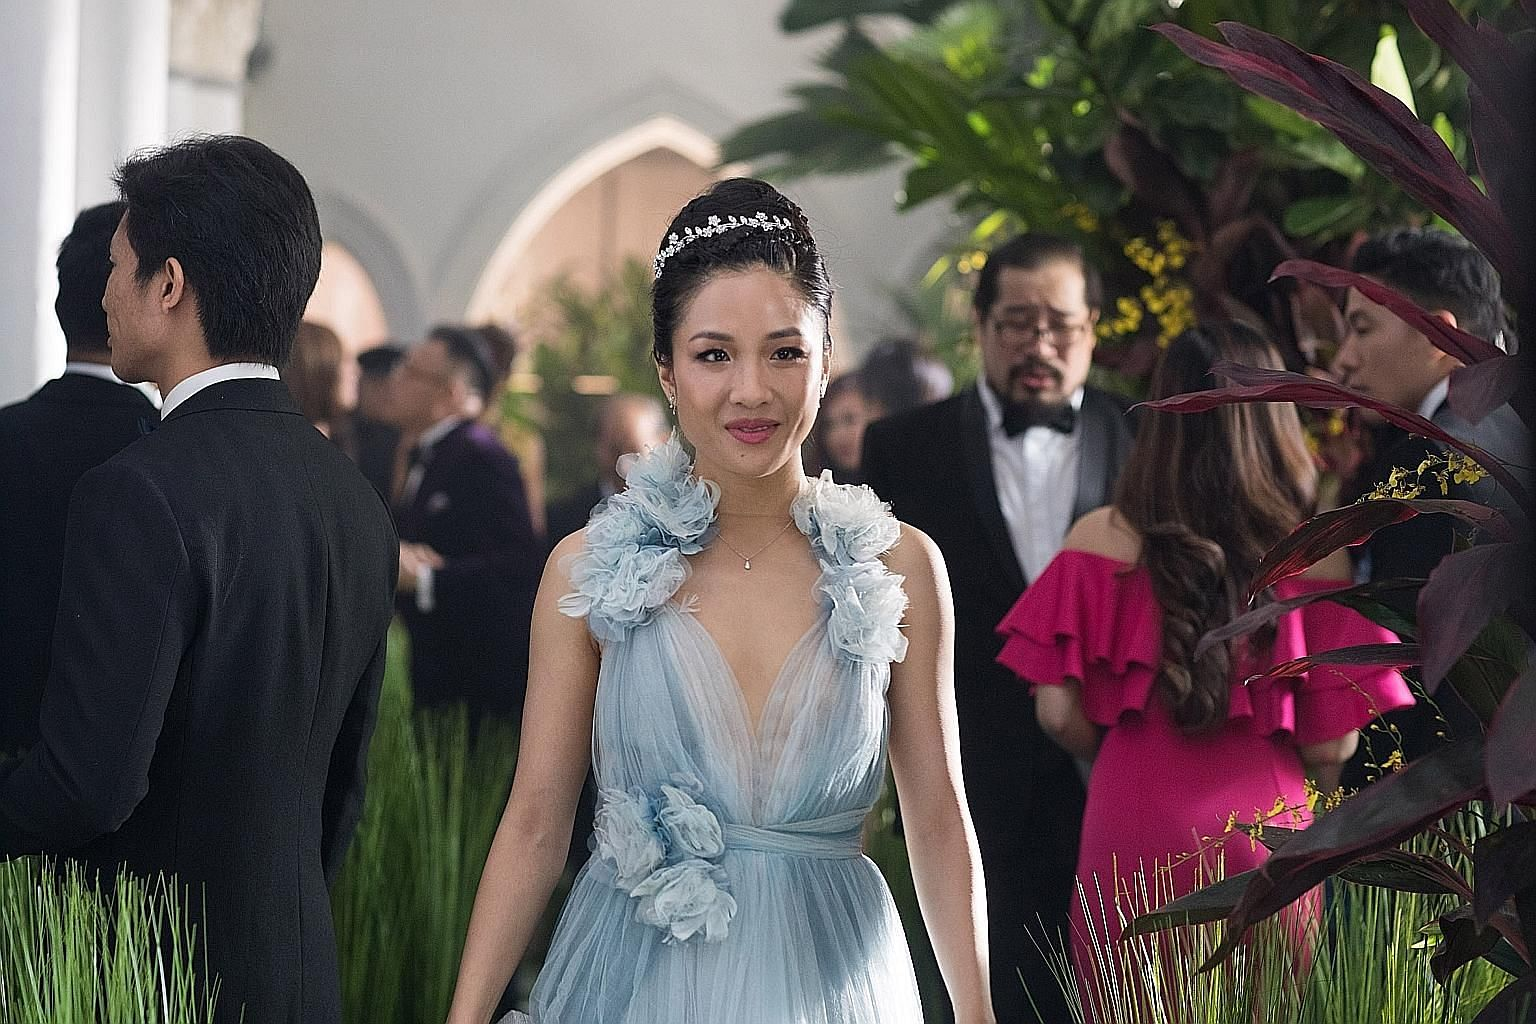 Constance Wu stars as Rachel Chu, an average person who happens to win the heart of one of Singapore's richest bachelors.